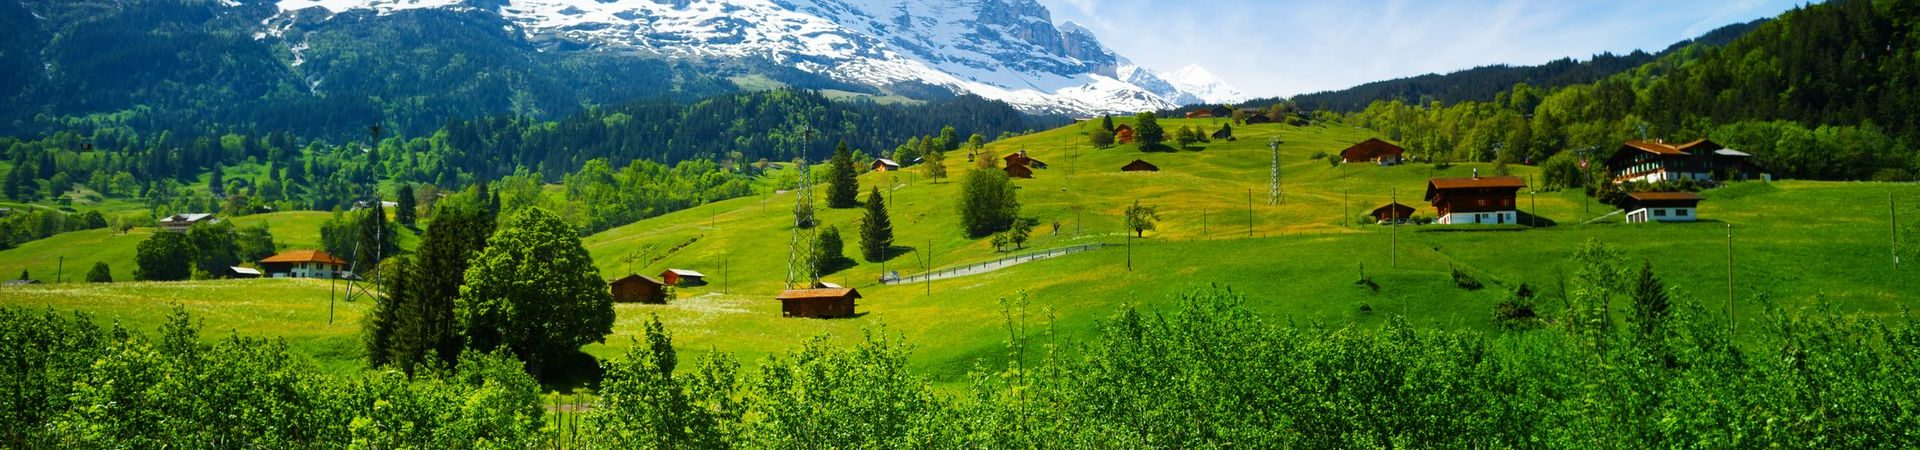 Blooming yellow flowers field of beautiful Swiss landscape with Alps mountains covered with snow in summer